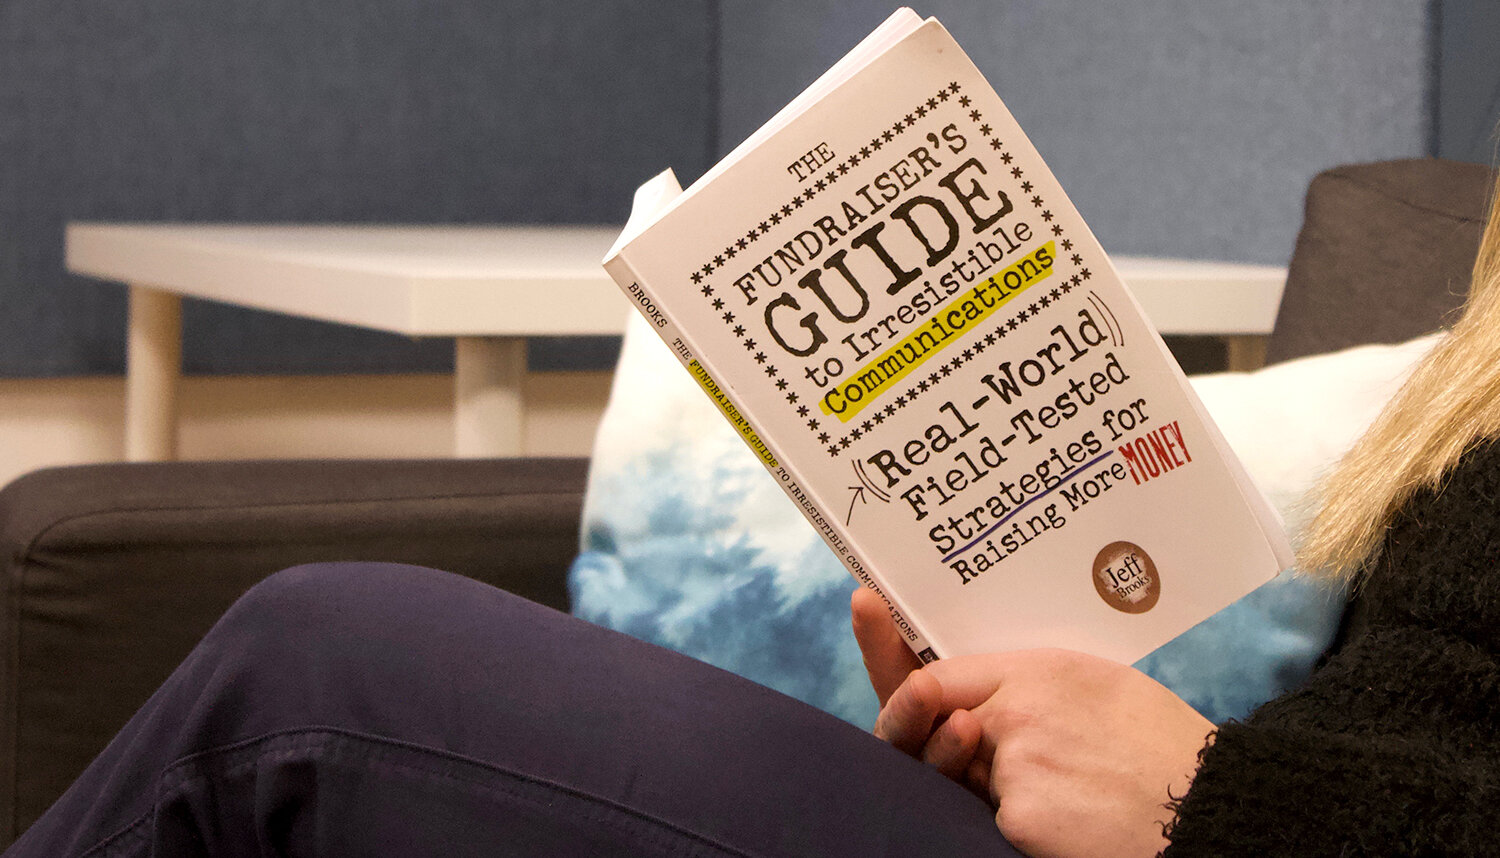 Reviewing The Fundraiser's Guide to Irresistible Communications